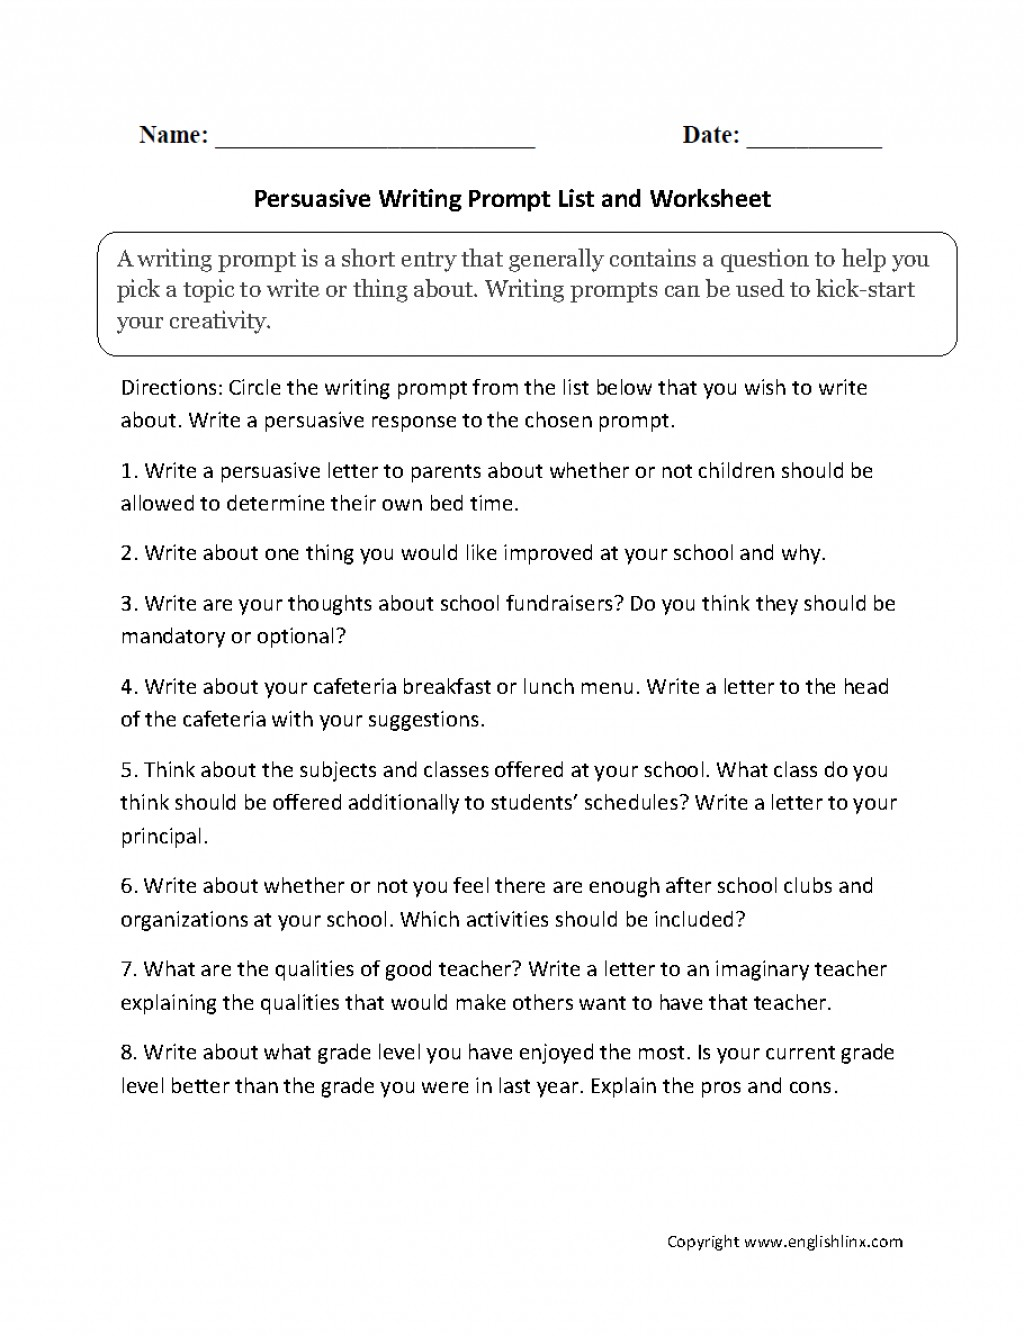 009 Paragraph Essay Writing Prompts Middle School Example Persuasive Prompt Incredible 5 Large